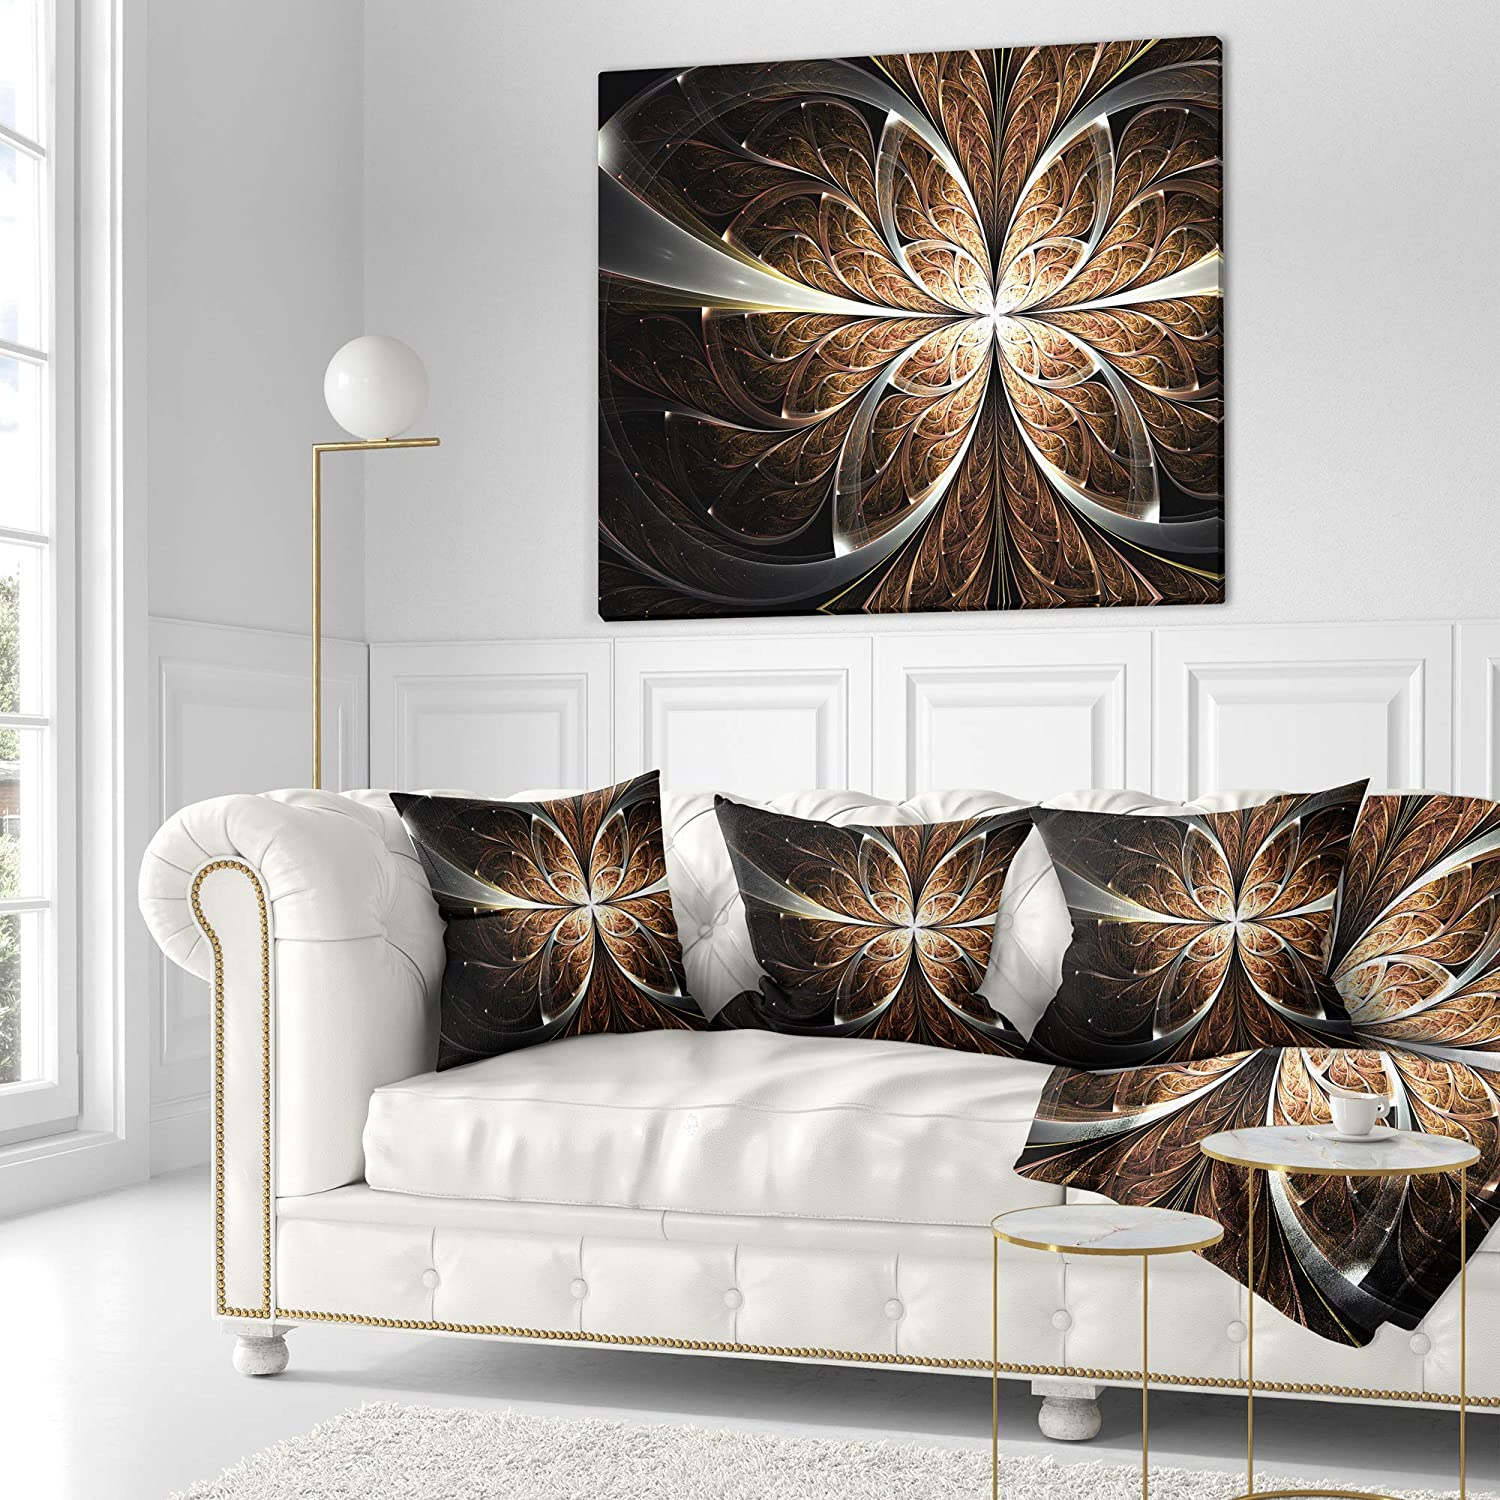 Sofa Throw Pillow 26 in Designart CU11815-26-26 Fractal Flower Brown Black Digital Art Floral Cushion Cover for Living Room in Insert Printed On Both Side x 26 in